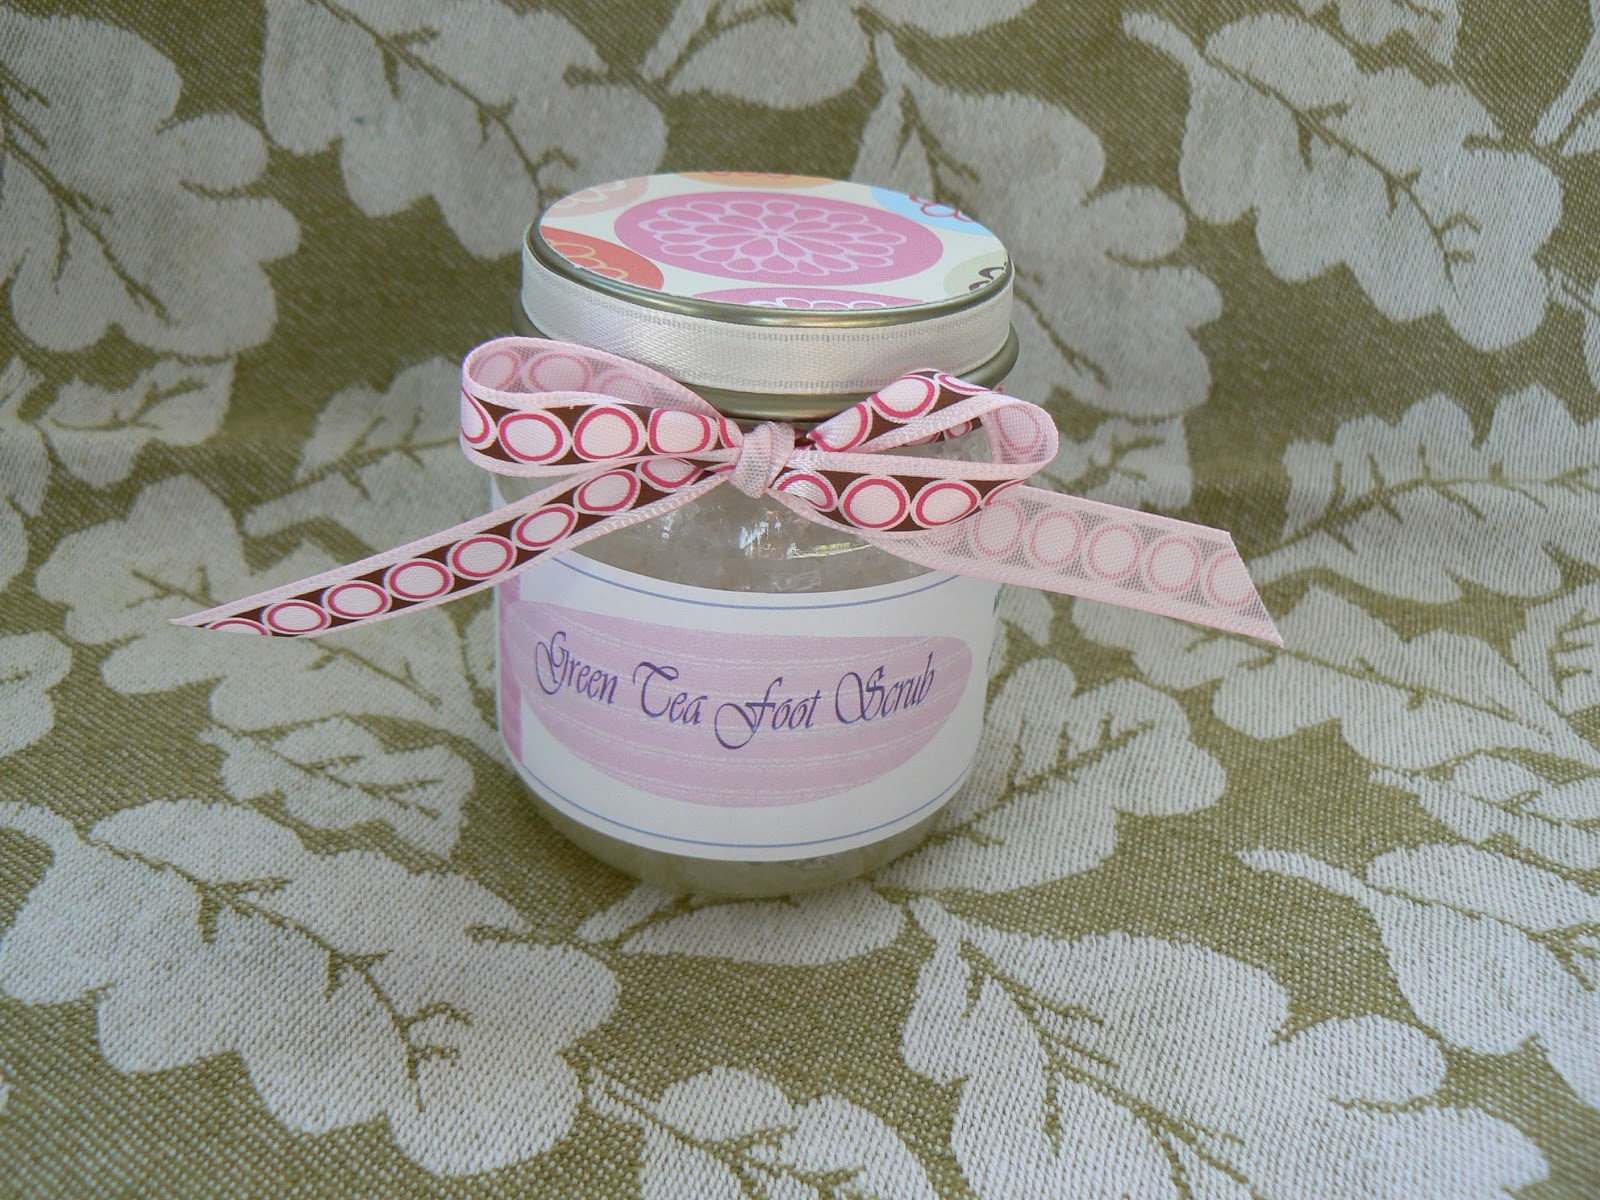 Green Tea Sea Salt Foot Scrub